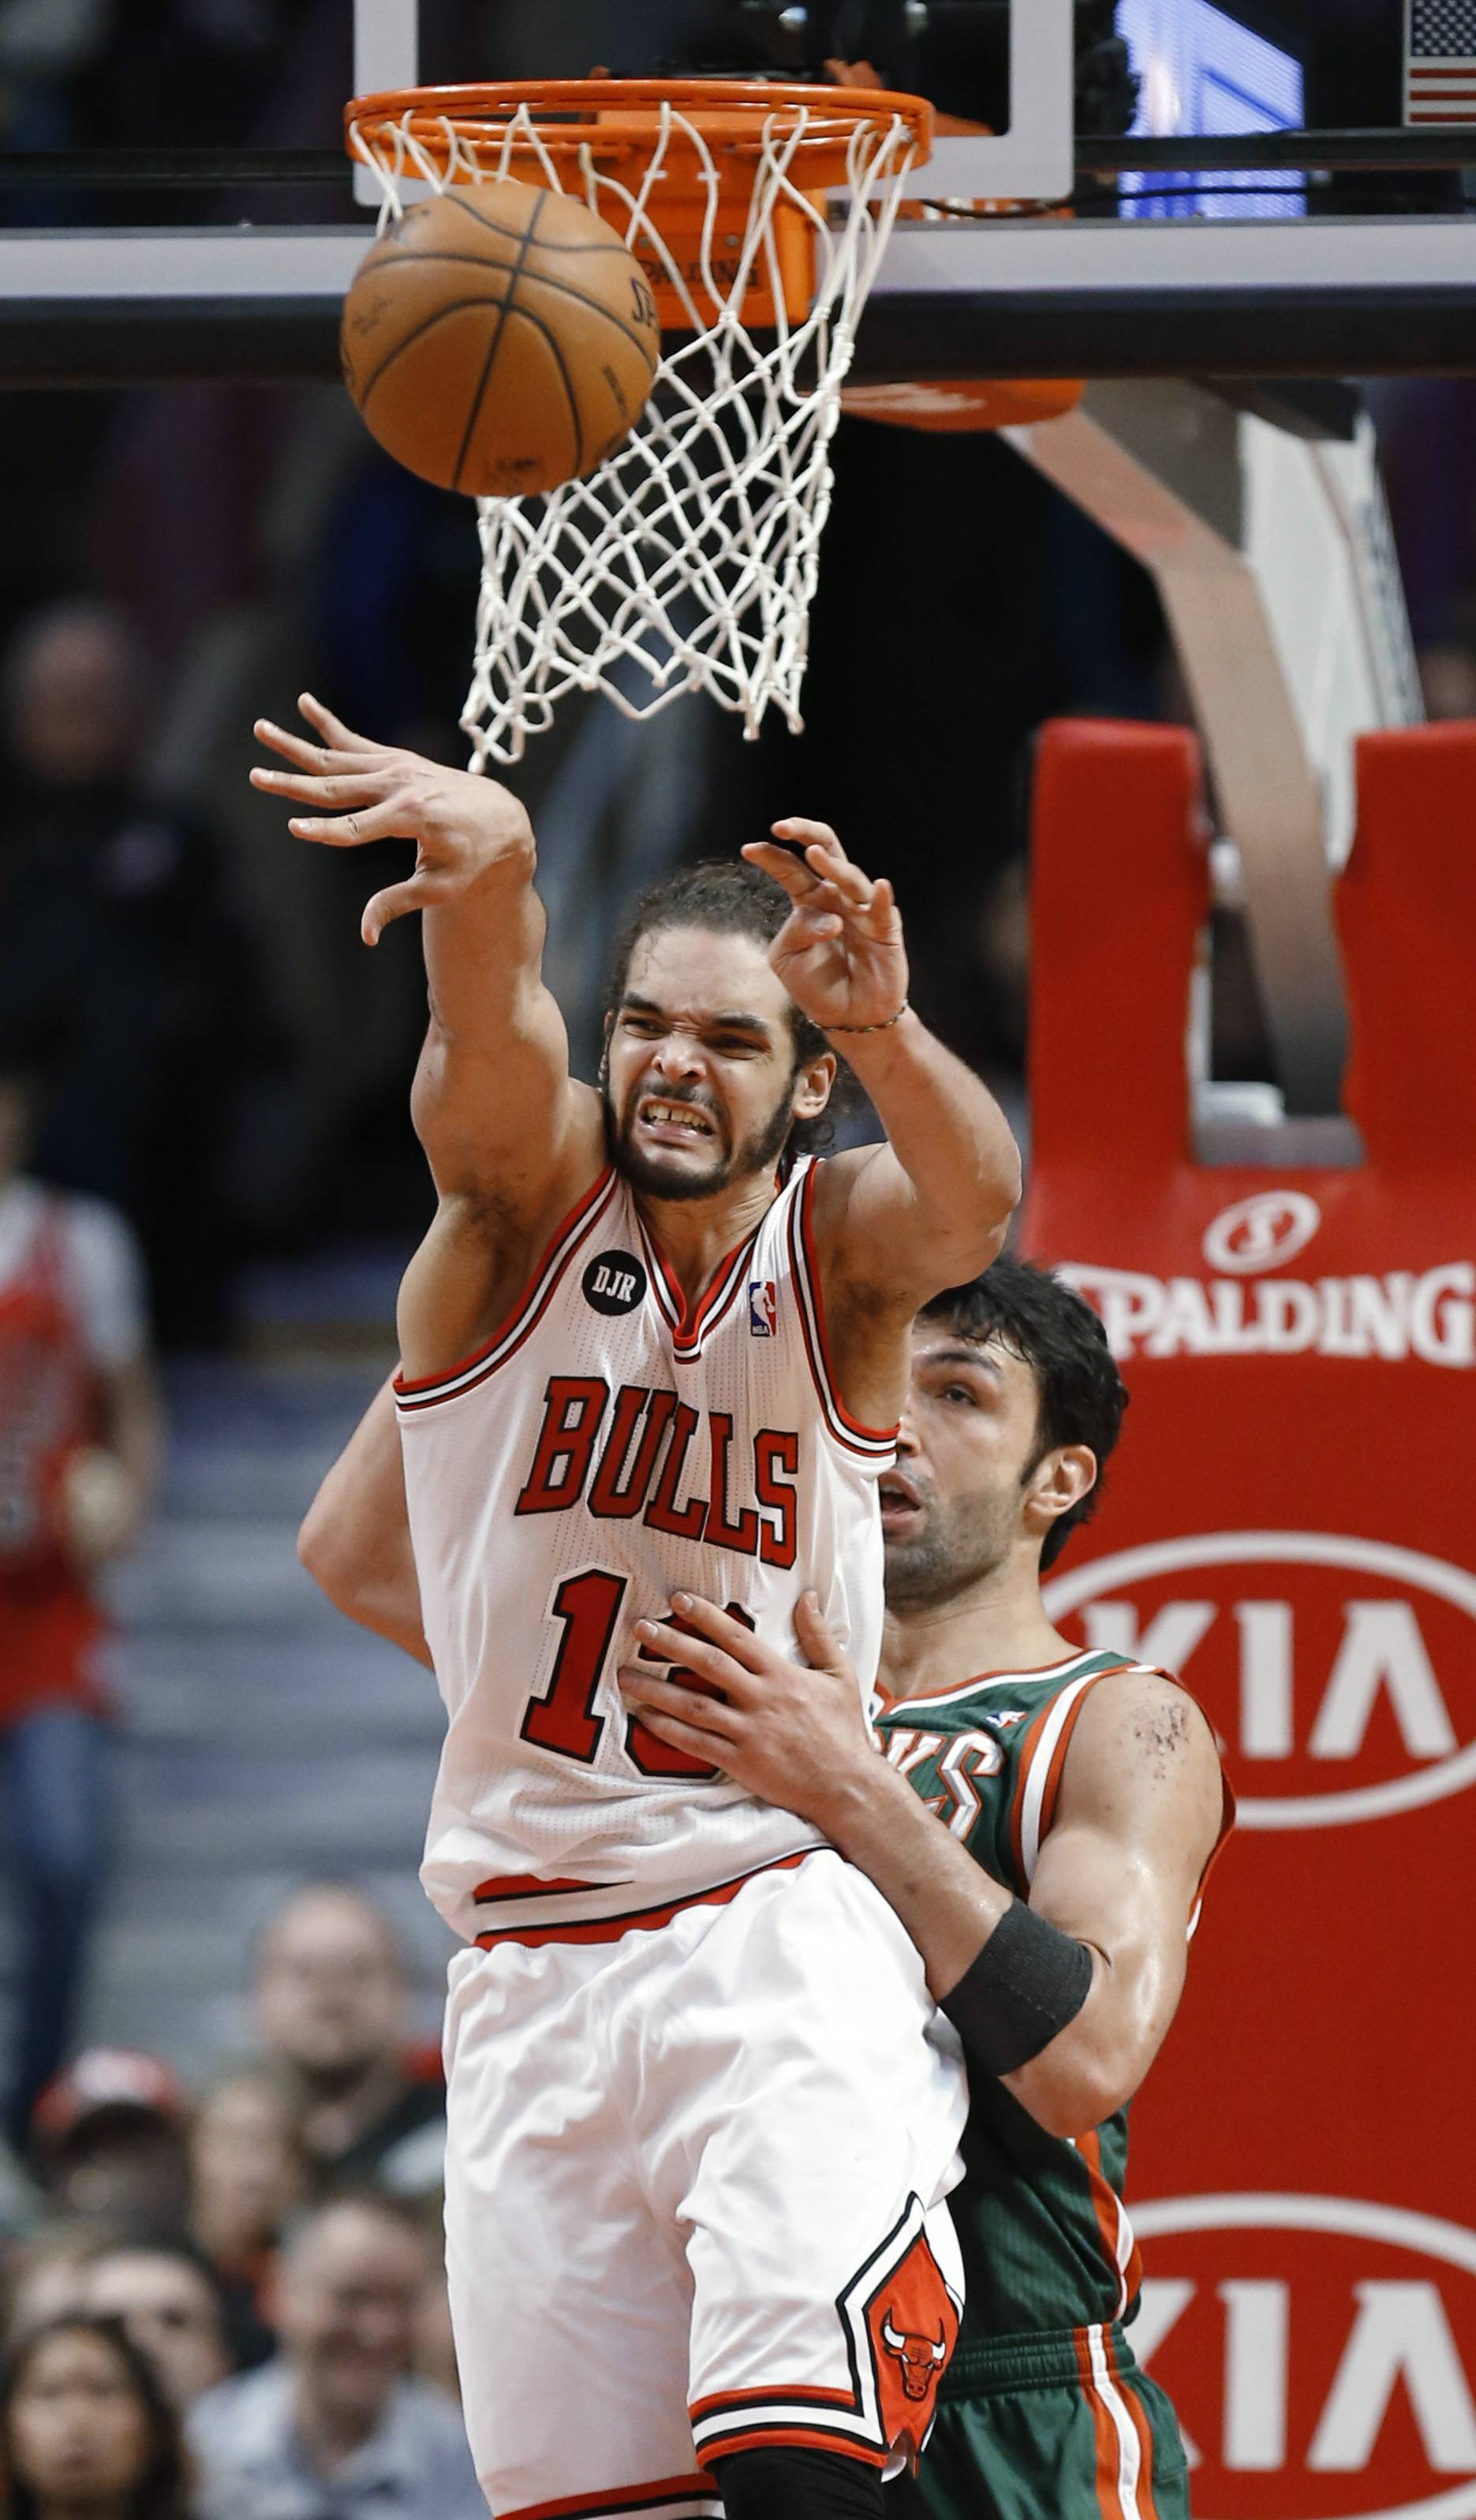 Joakim Noah passes the ball away from Bucks center Zaza Pachulia during the Bulls' win Friday. Noah is averaging a team-best 6.6 assists per game since Feb. 1.